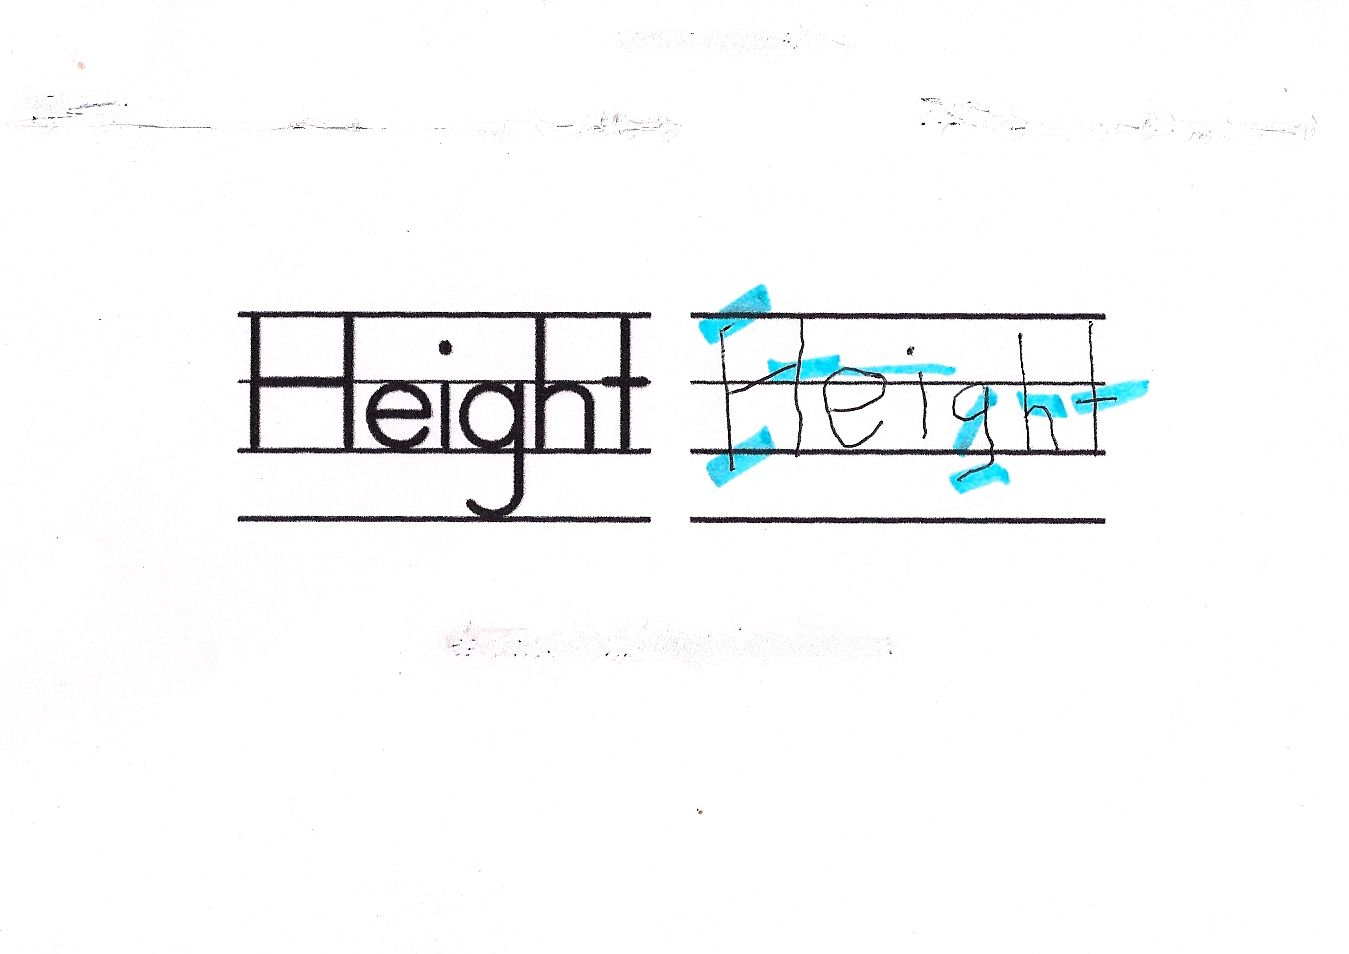 An example of poor handwriting with letter height problems.